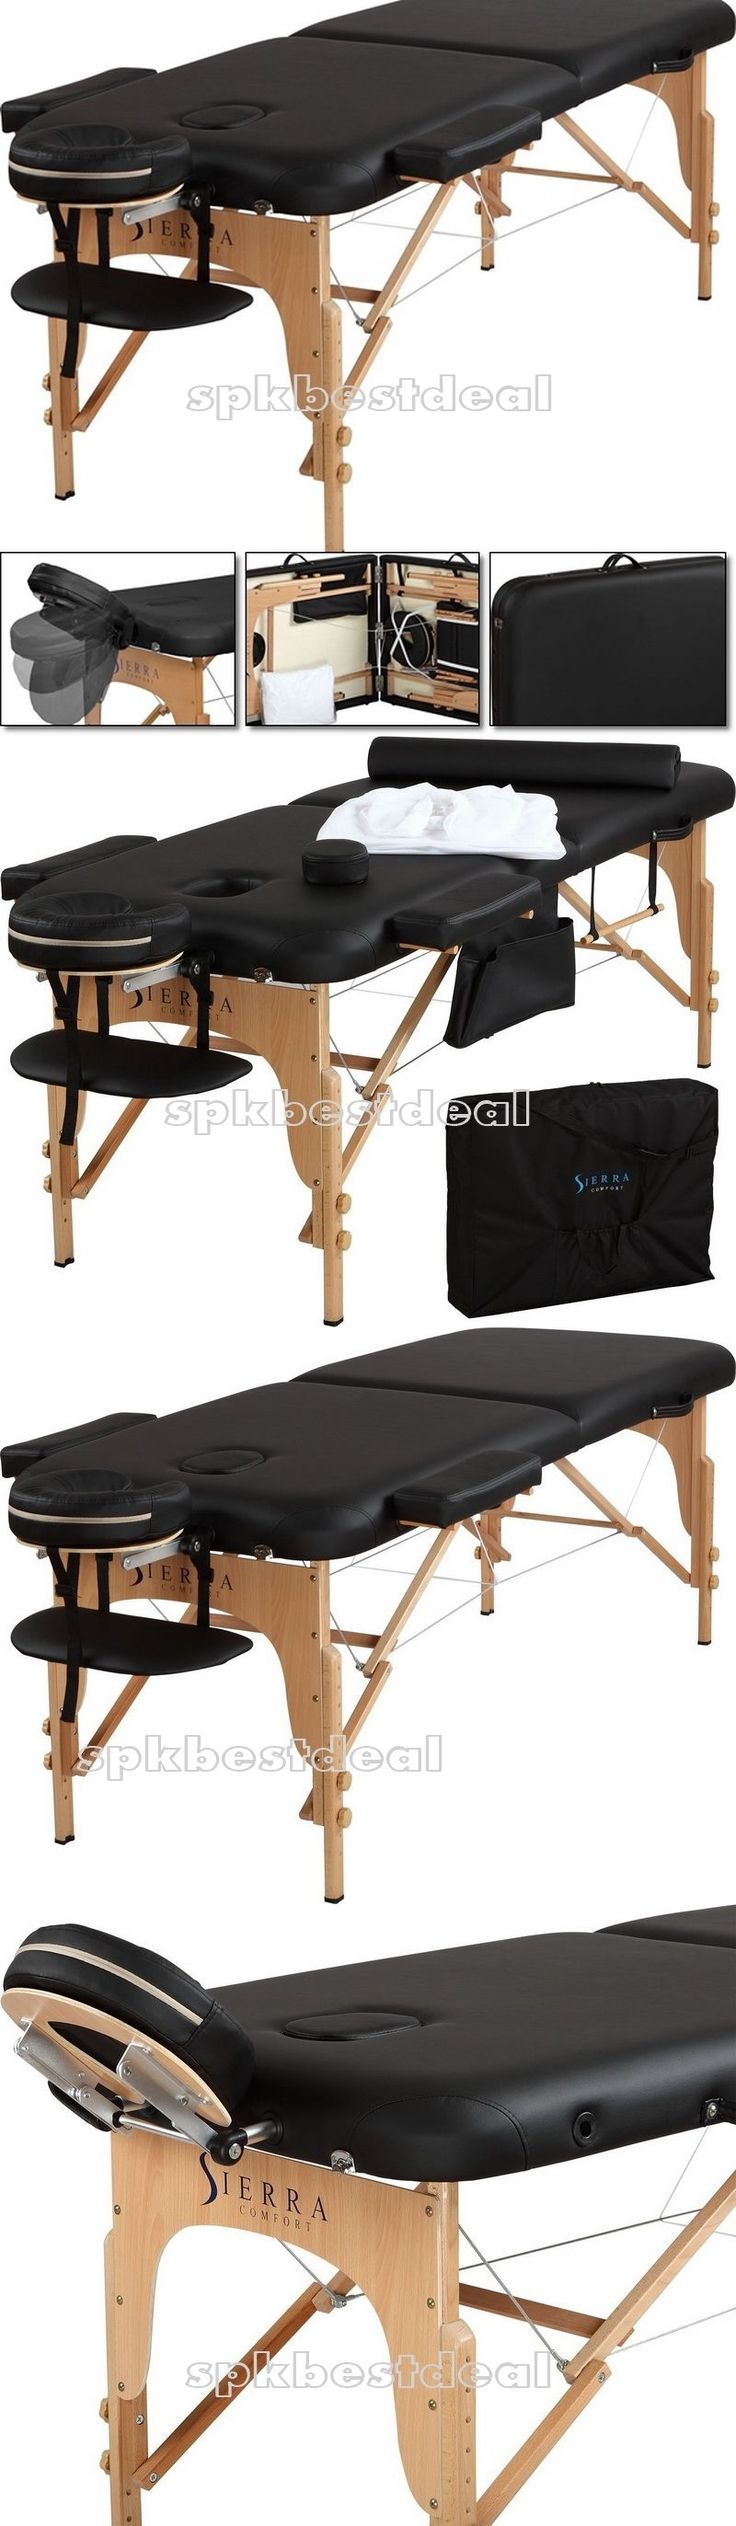 Massage Tables and Chairs: Massage Table Portable Spa Relax Health Physical Therapy Beauty Care Tools Bag -> BUY IT NOW ONLY: $196.25 on eBay!